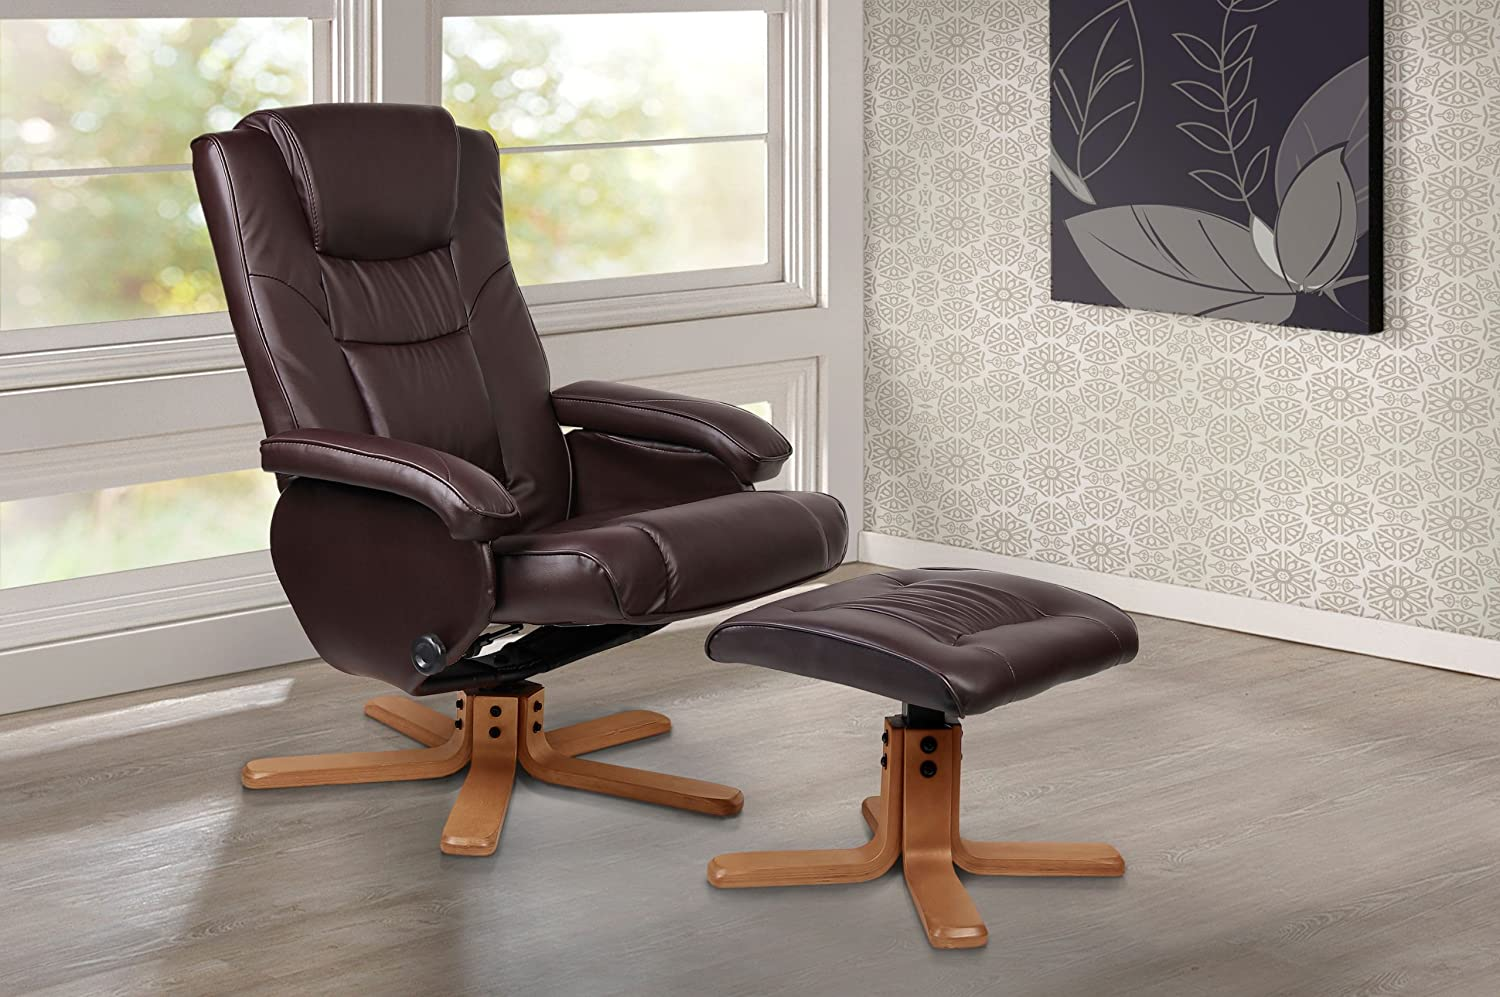 Lovely Birlea Nevada Faux Leather Swivel Chair With Footstool, Brown:  Amazon.co.uk: Kitchen U0026 Home